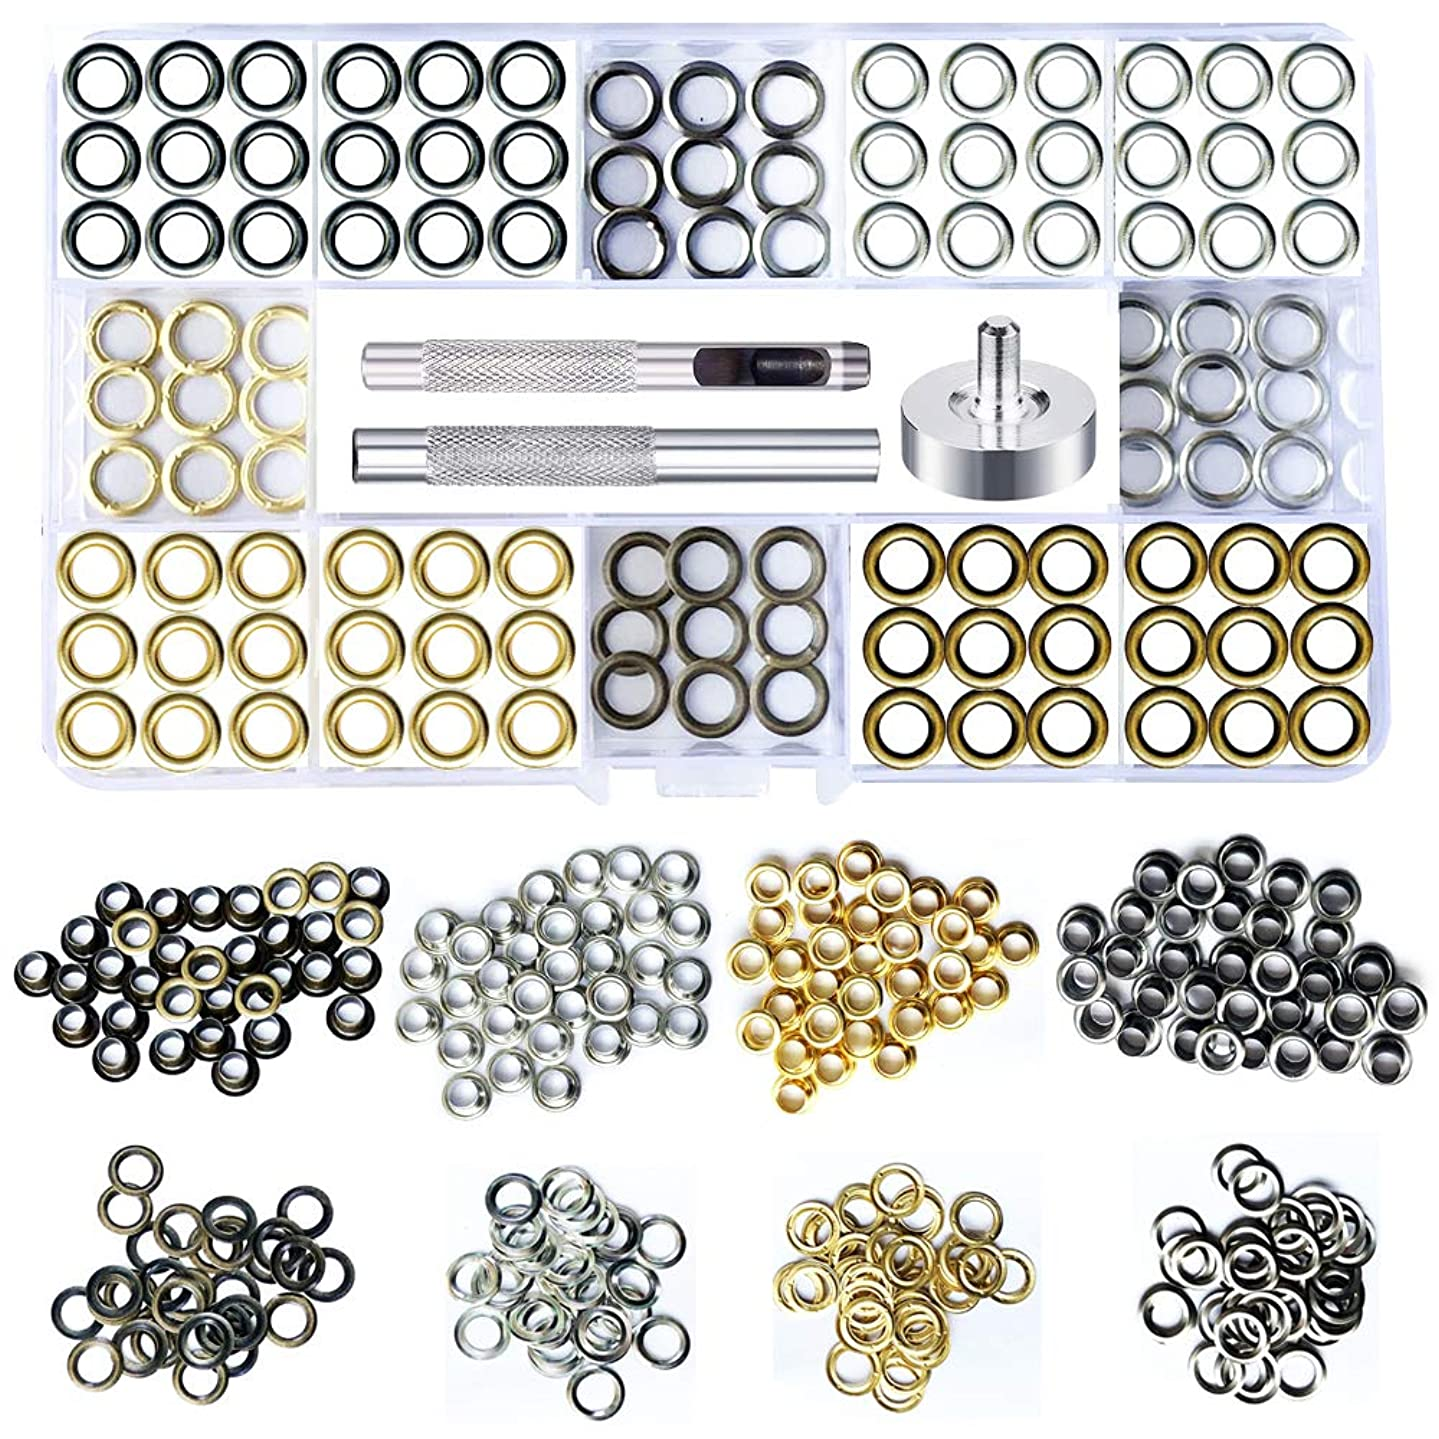 SuperJpsor 200 Sets of Metal Eyelets,Brass,Silver,Copper and Black Stainless Steel Buttonholes and Installation Tools for Repair and Replacement of Shoes,Clothing and Leather Eyelets,Grommet Kit